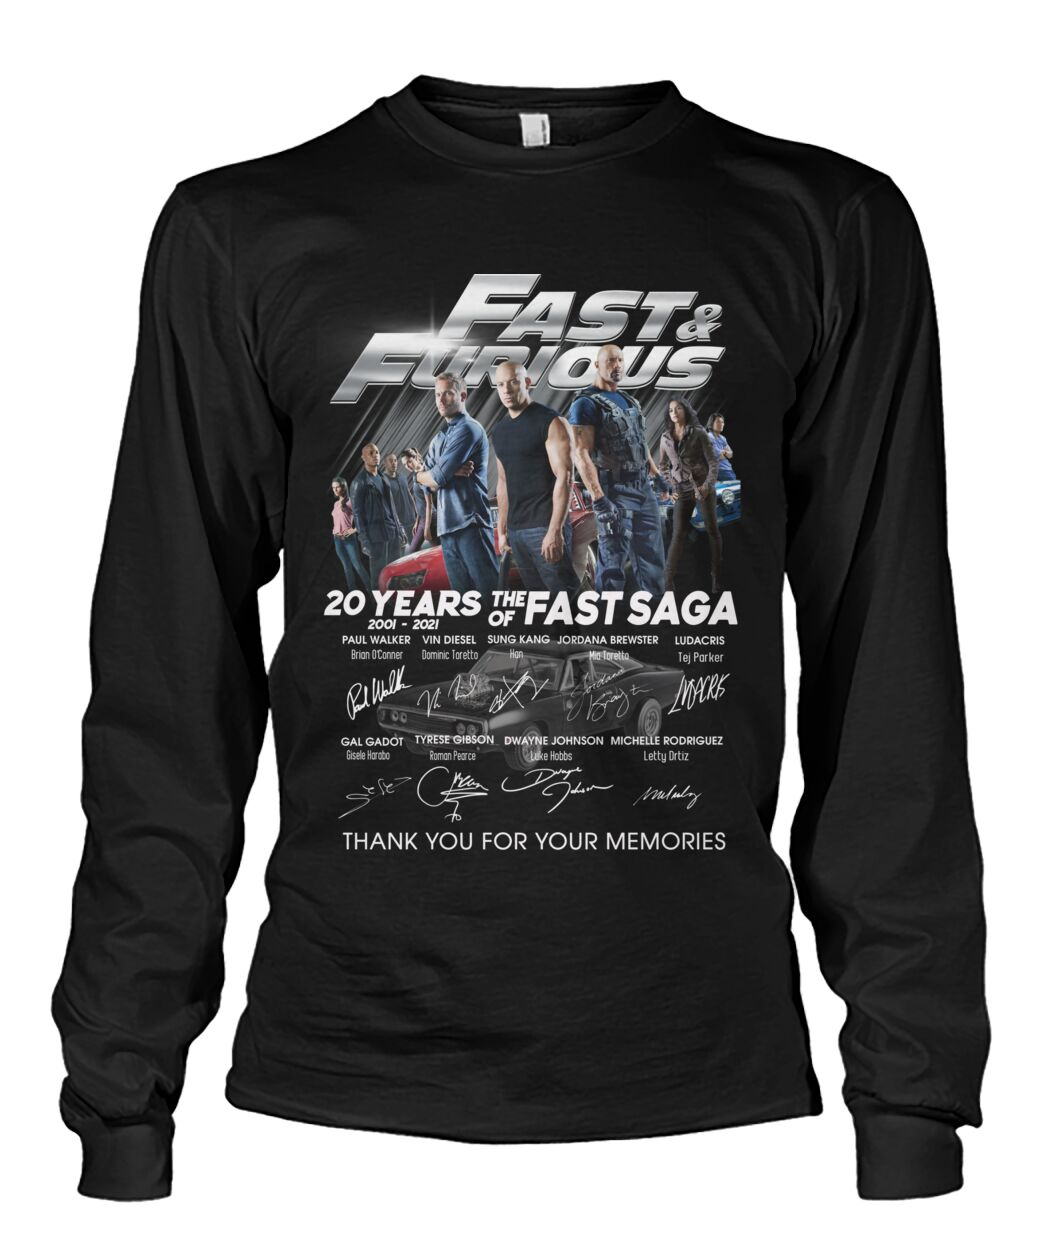 Fast and furious 20 years of the fast saga signature long sleeve